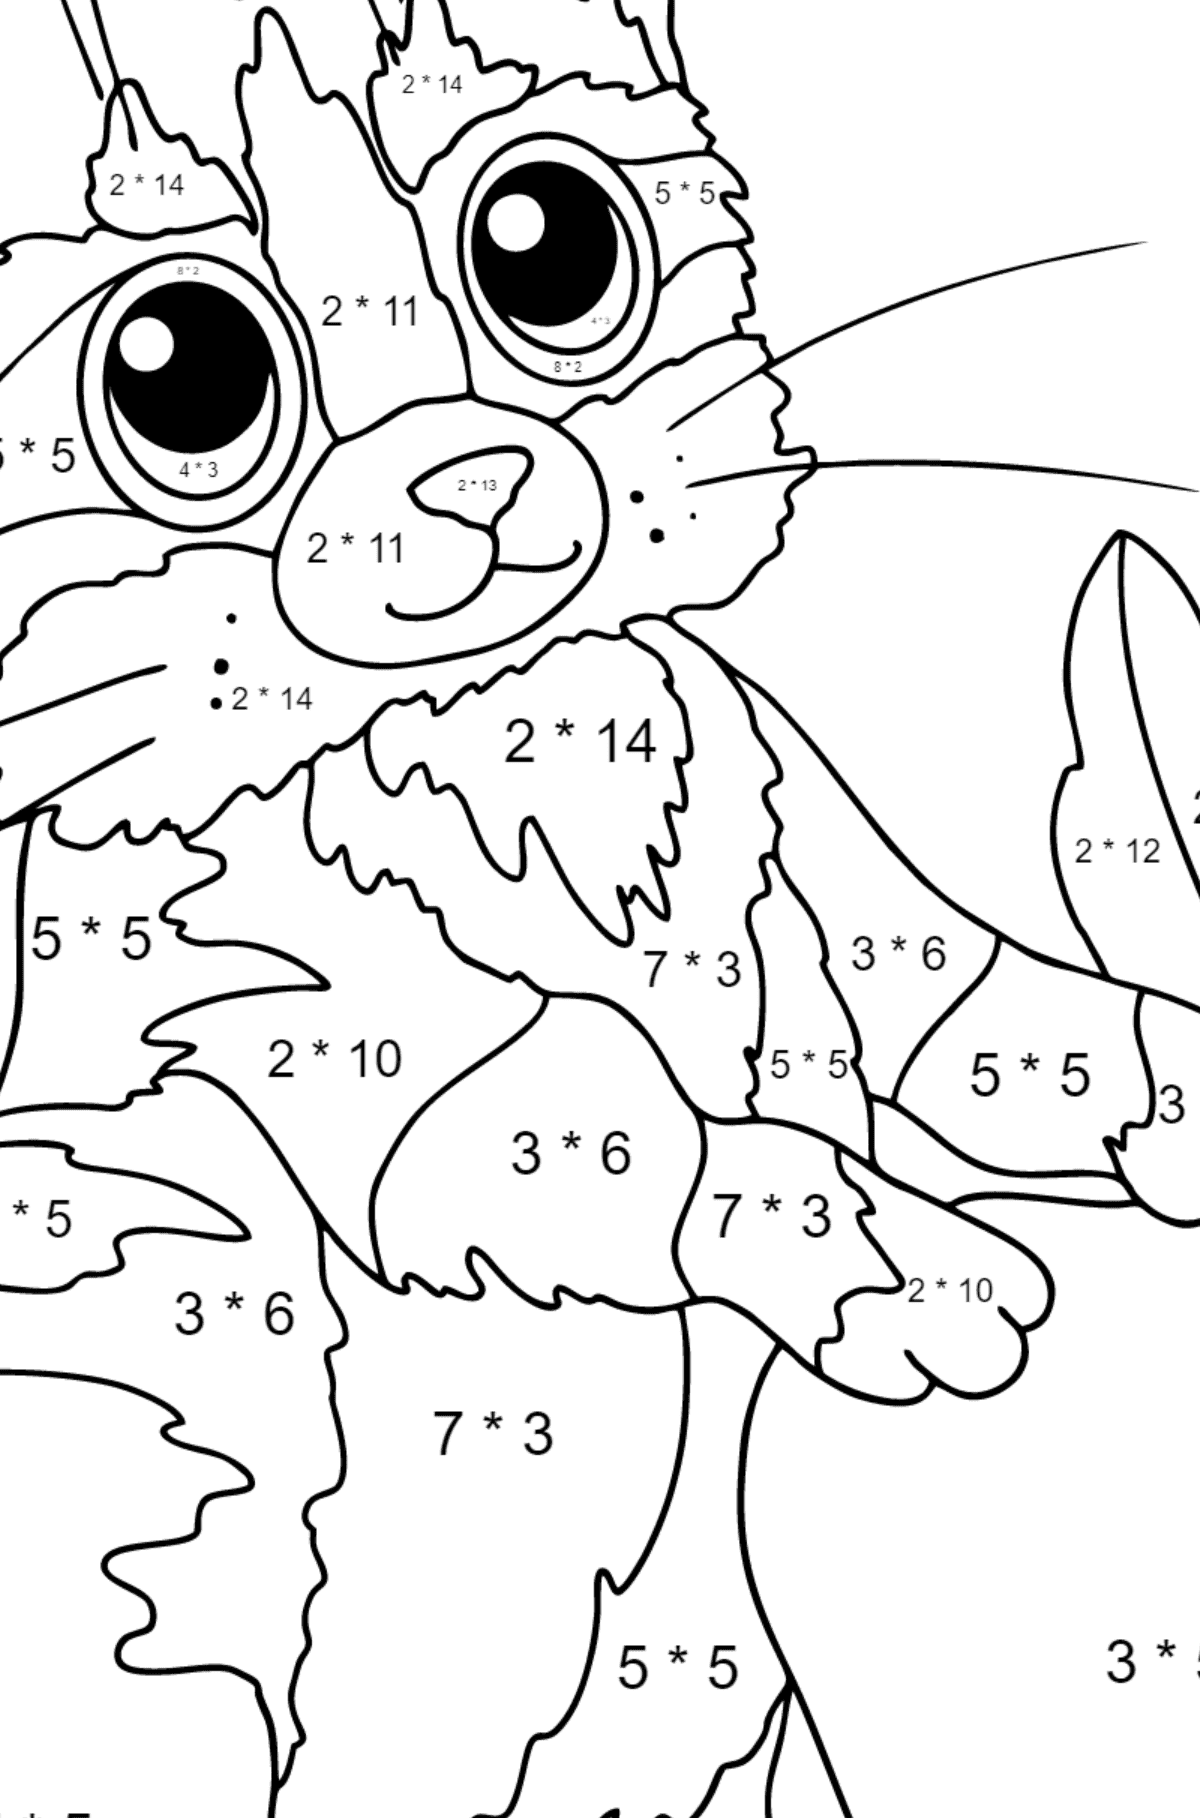 Coloring Page - A Cat and a Ripe Apple - Math Coloring - Multiplication for Kids